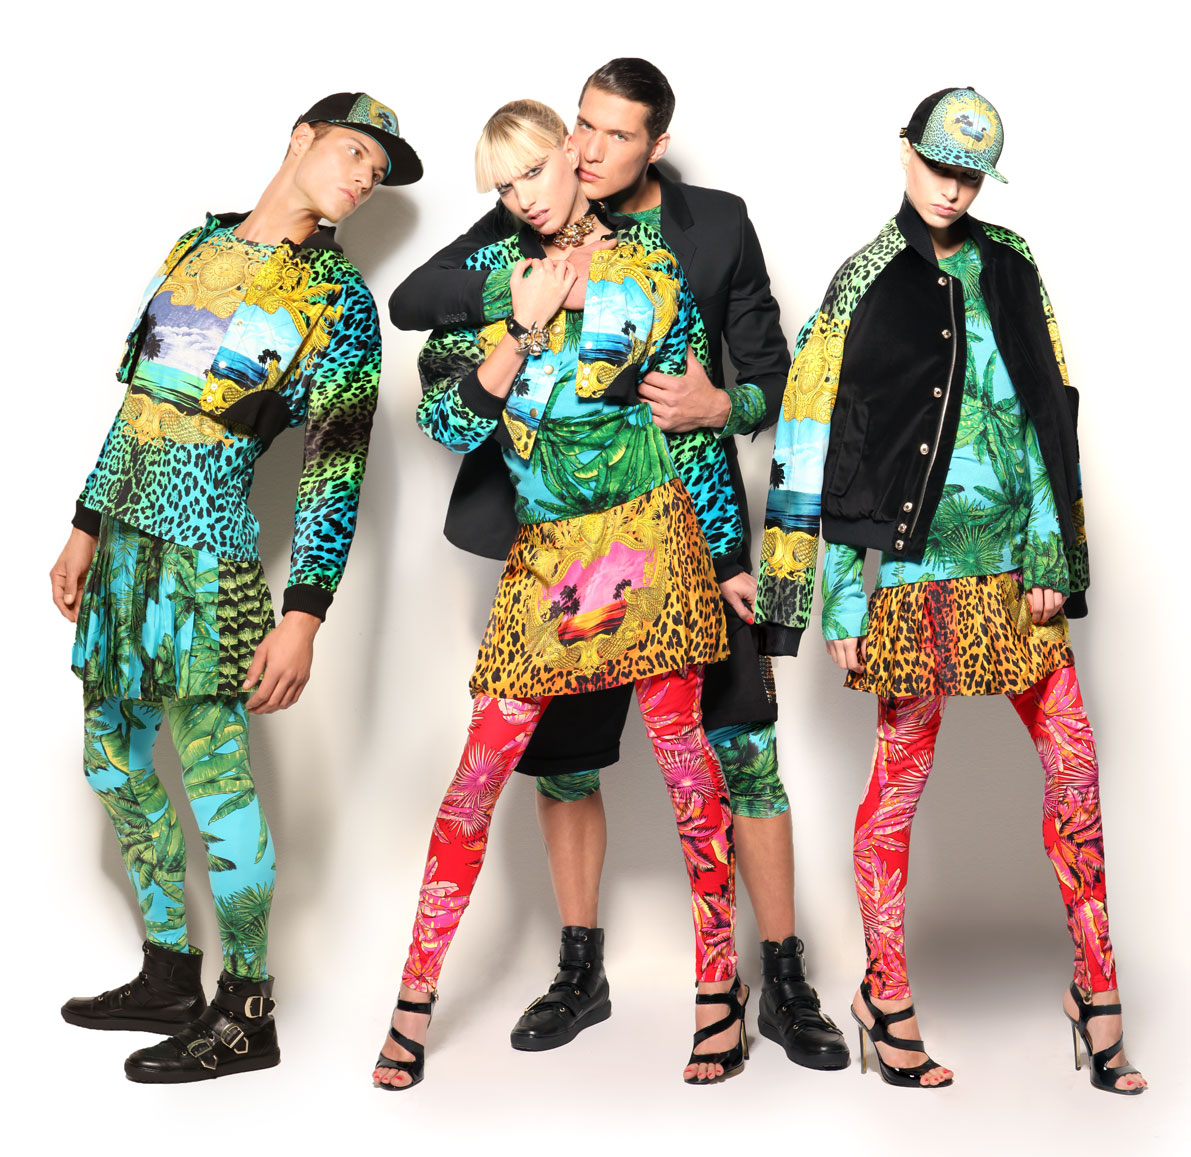 Versace Collaboration With H&M 2011 Campaign